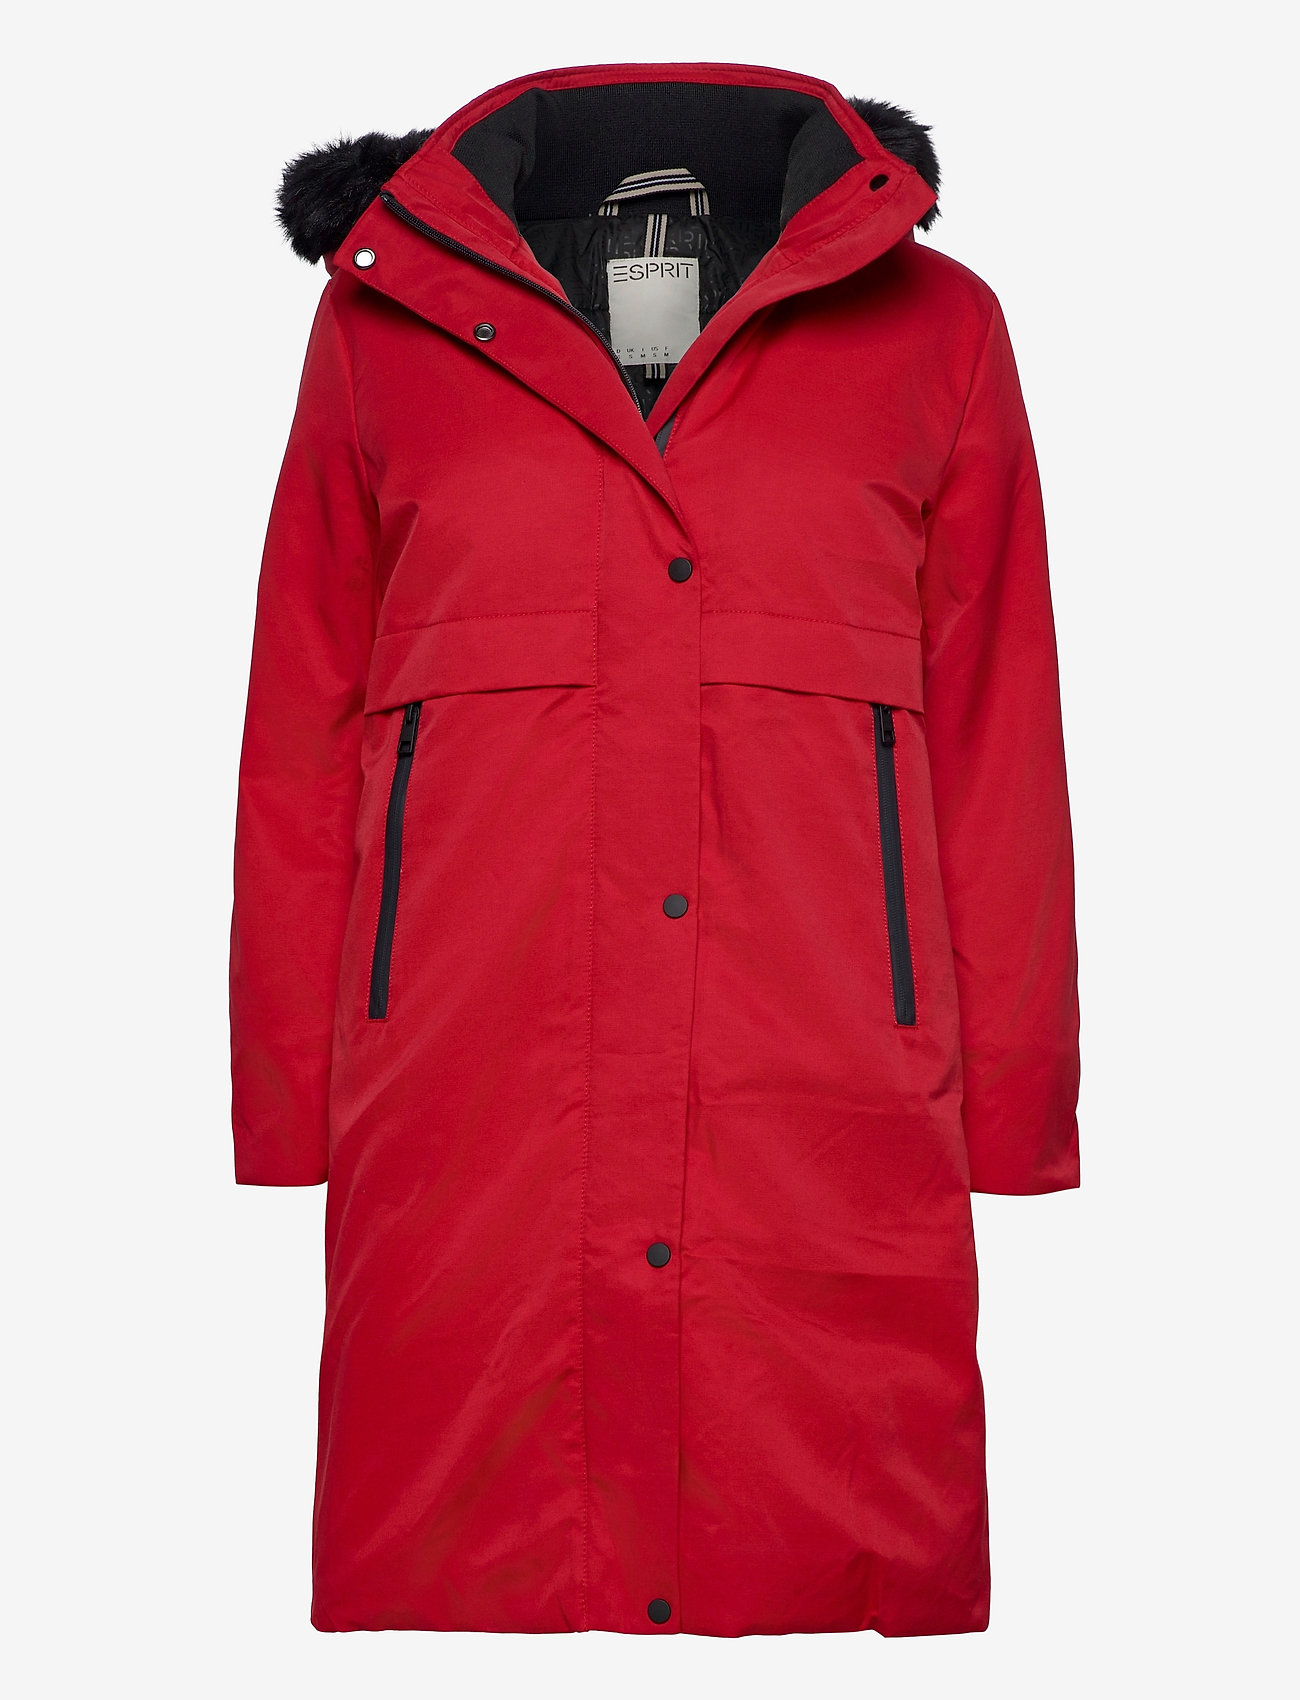 Esprit Casual - Coats woven - parkas - dark red - 0